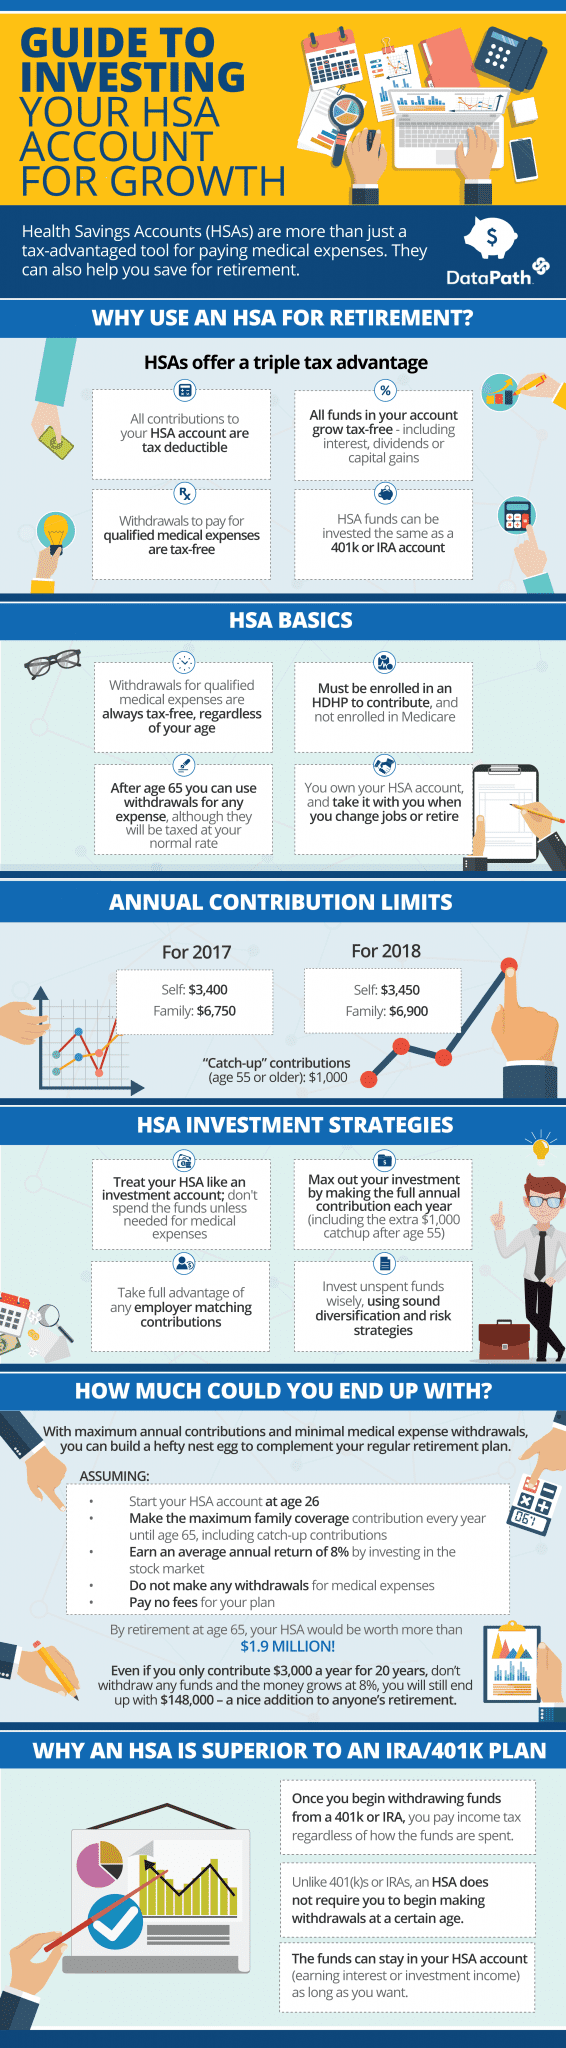 Guide to Investing Your HSA Account